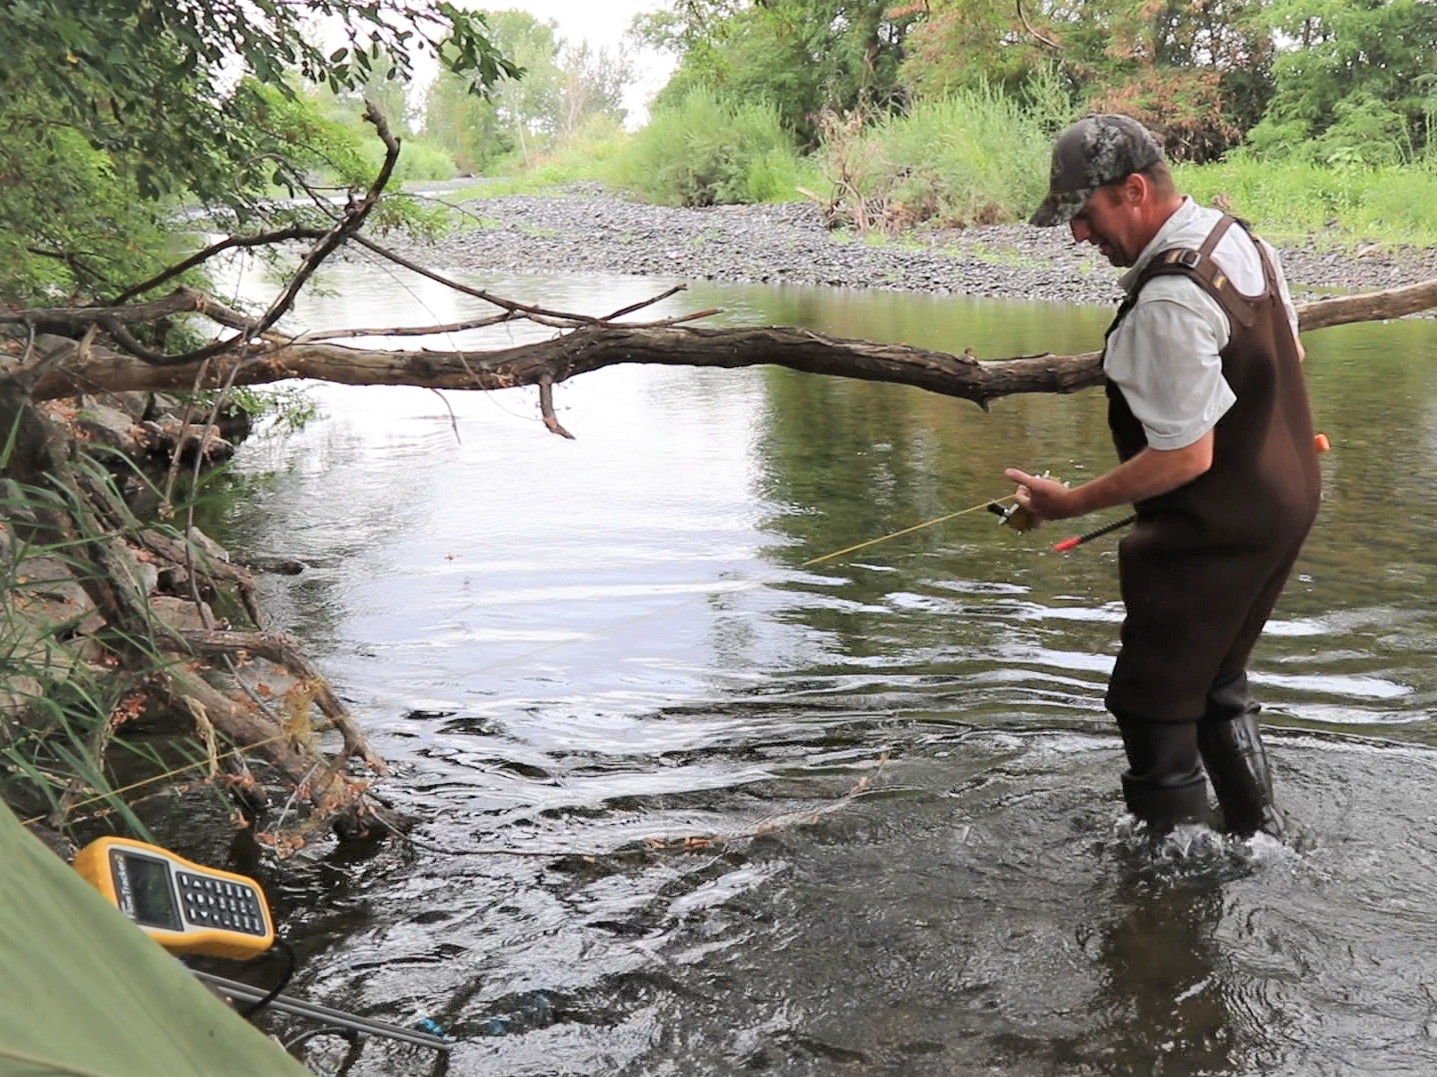 A watershed technician checks instruments in a stream in the Walla Walla River Basin.